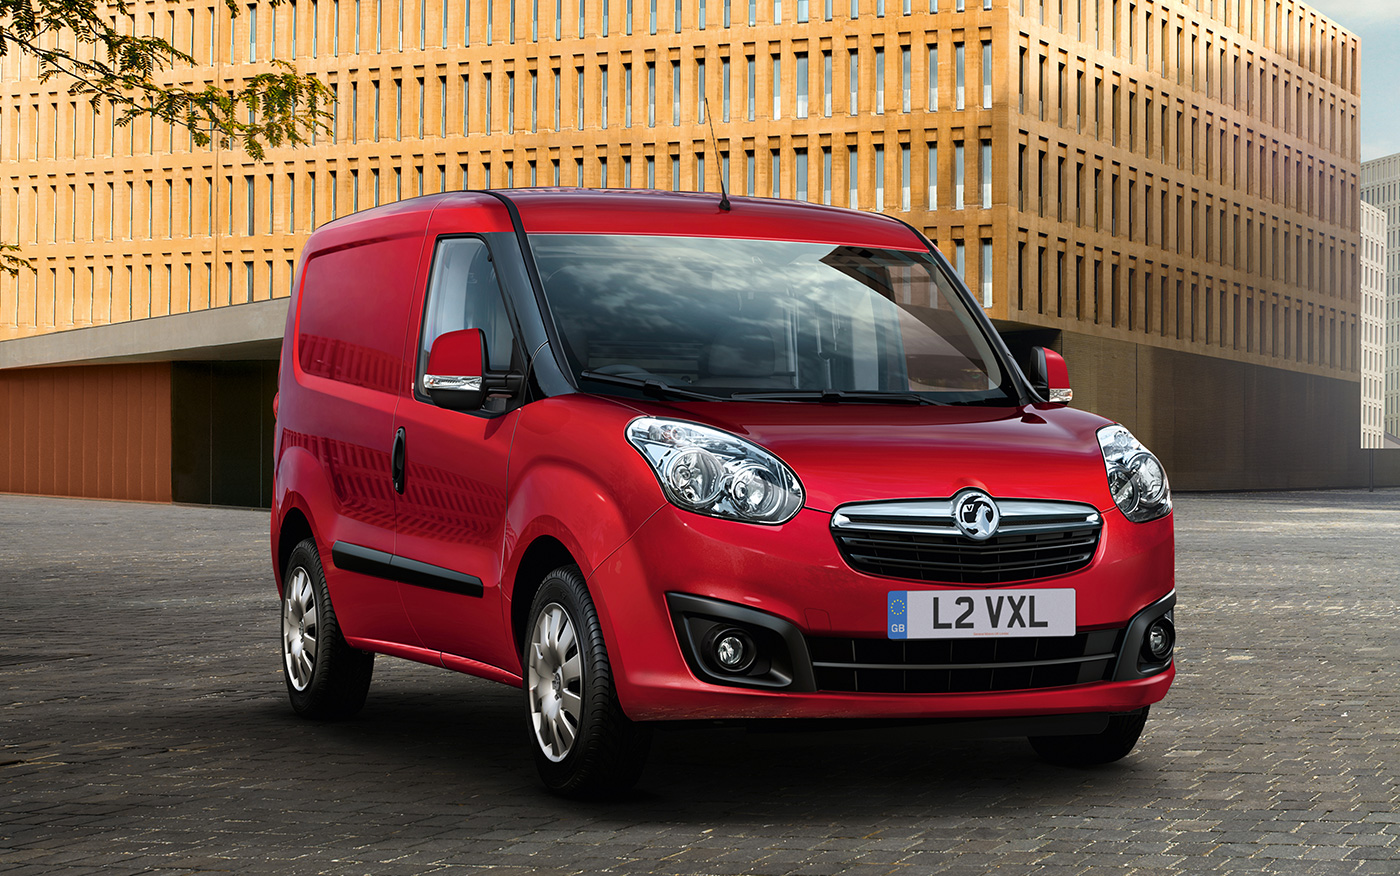 Vauxhall Combo 1.3 CDTi 2300 L2h1 Sportive 95ps Start/stop